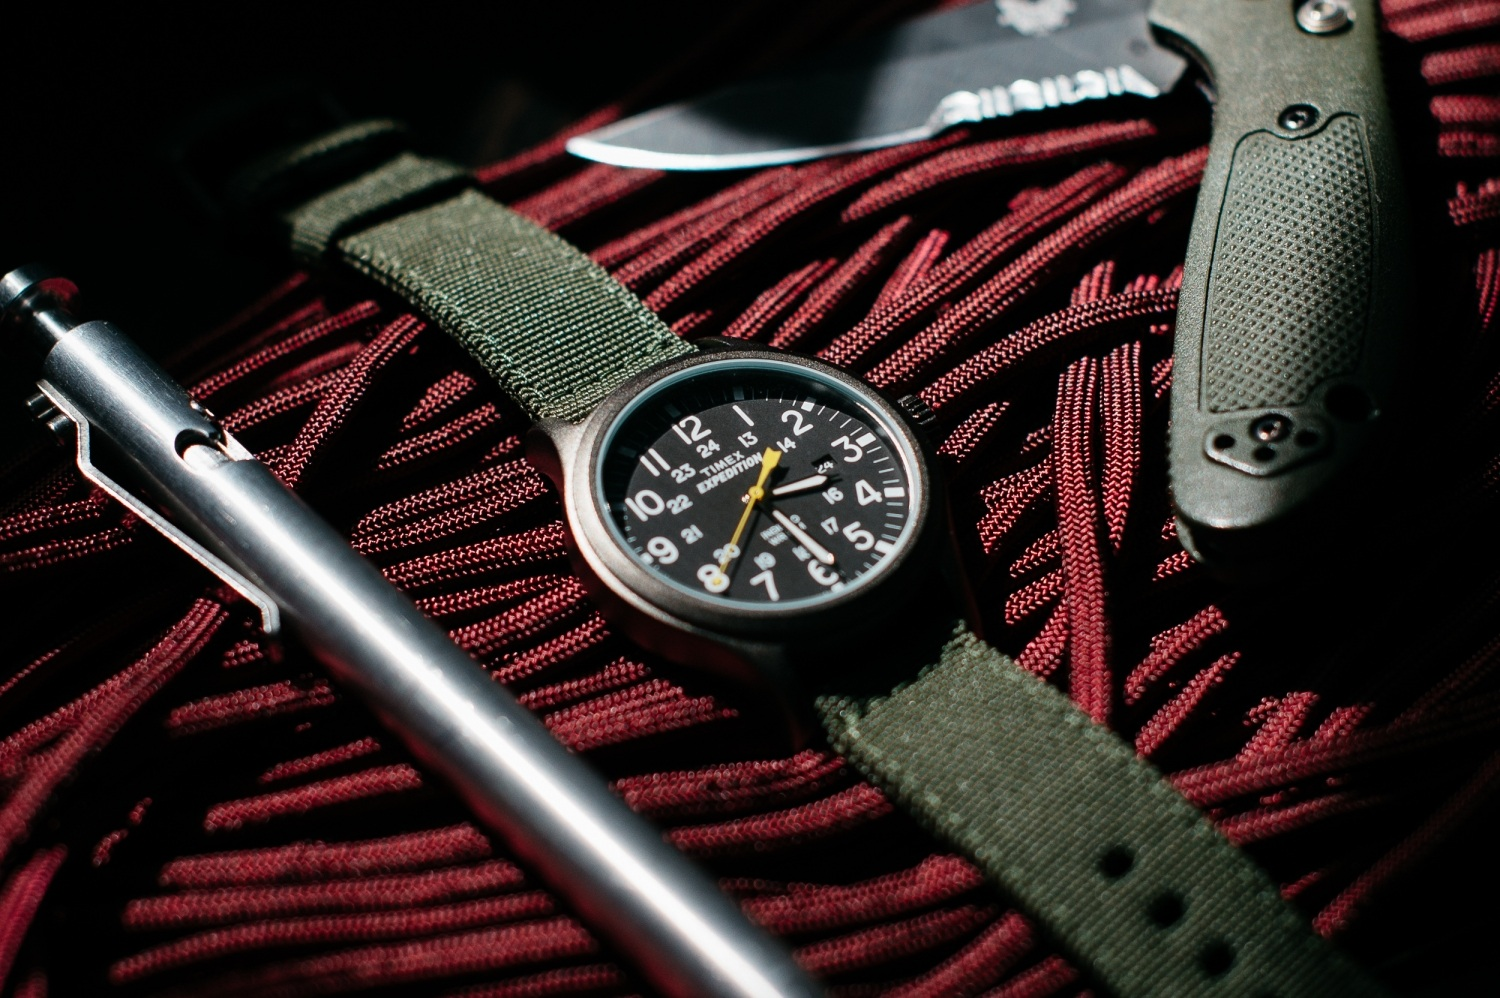 edc-6-military-watches-under-100